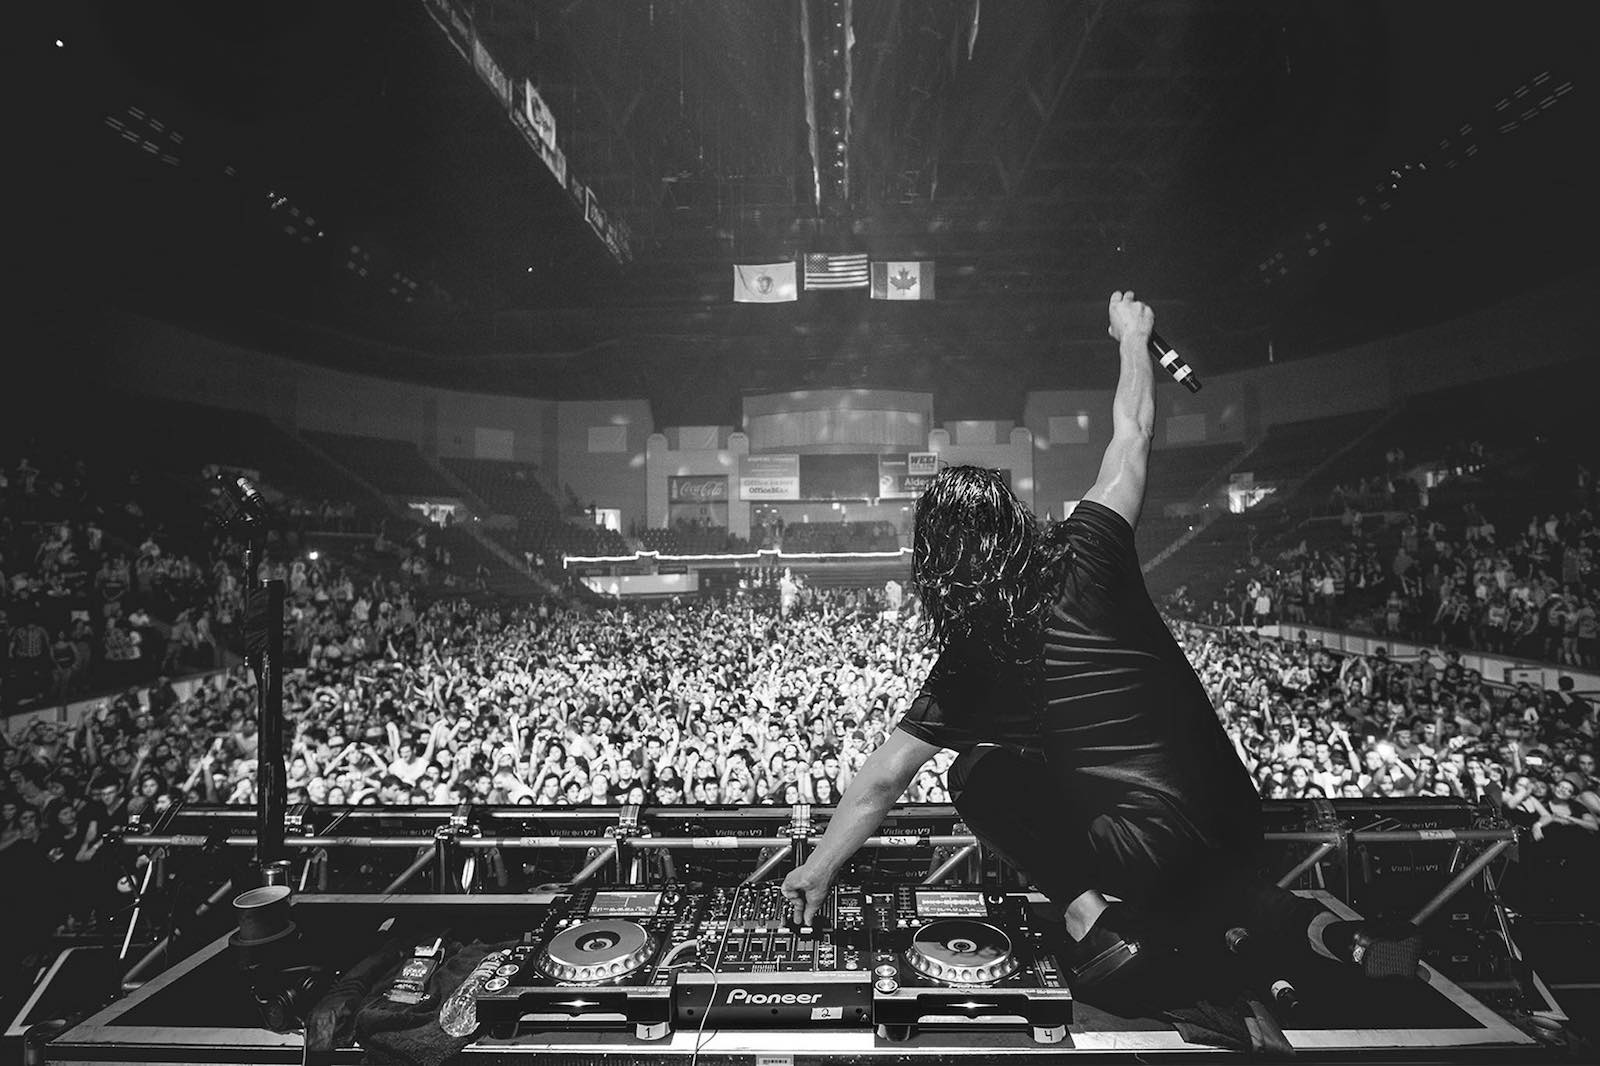 001 - DJ _ CROWD PORT - SKRILLEX copy.jpg